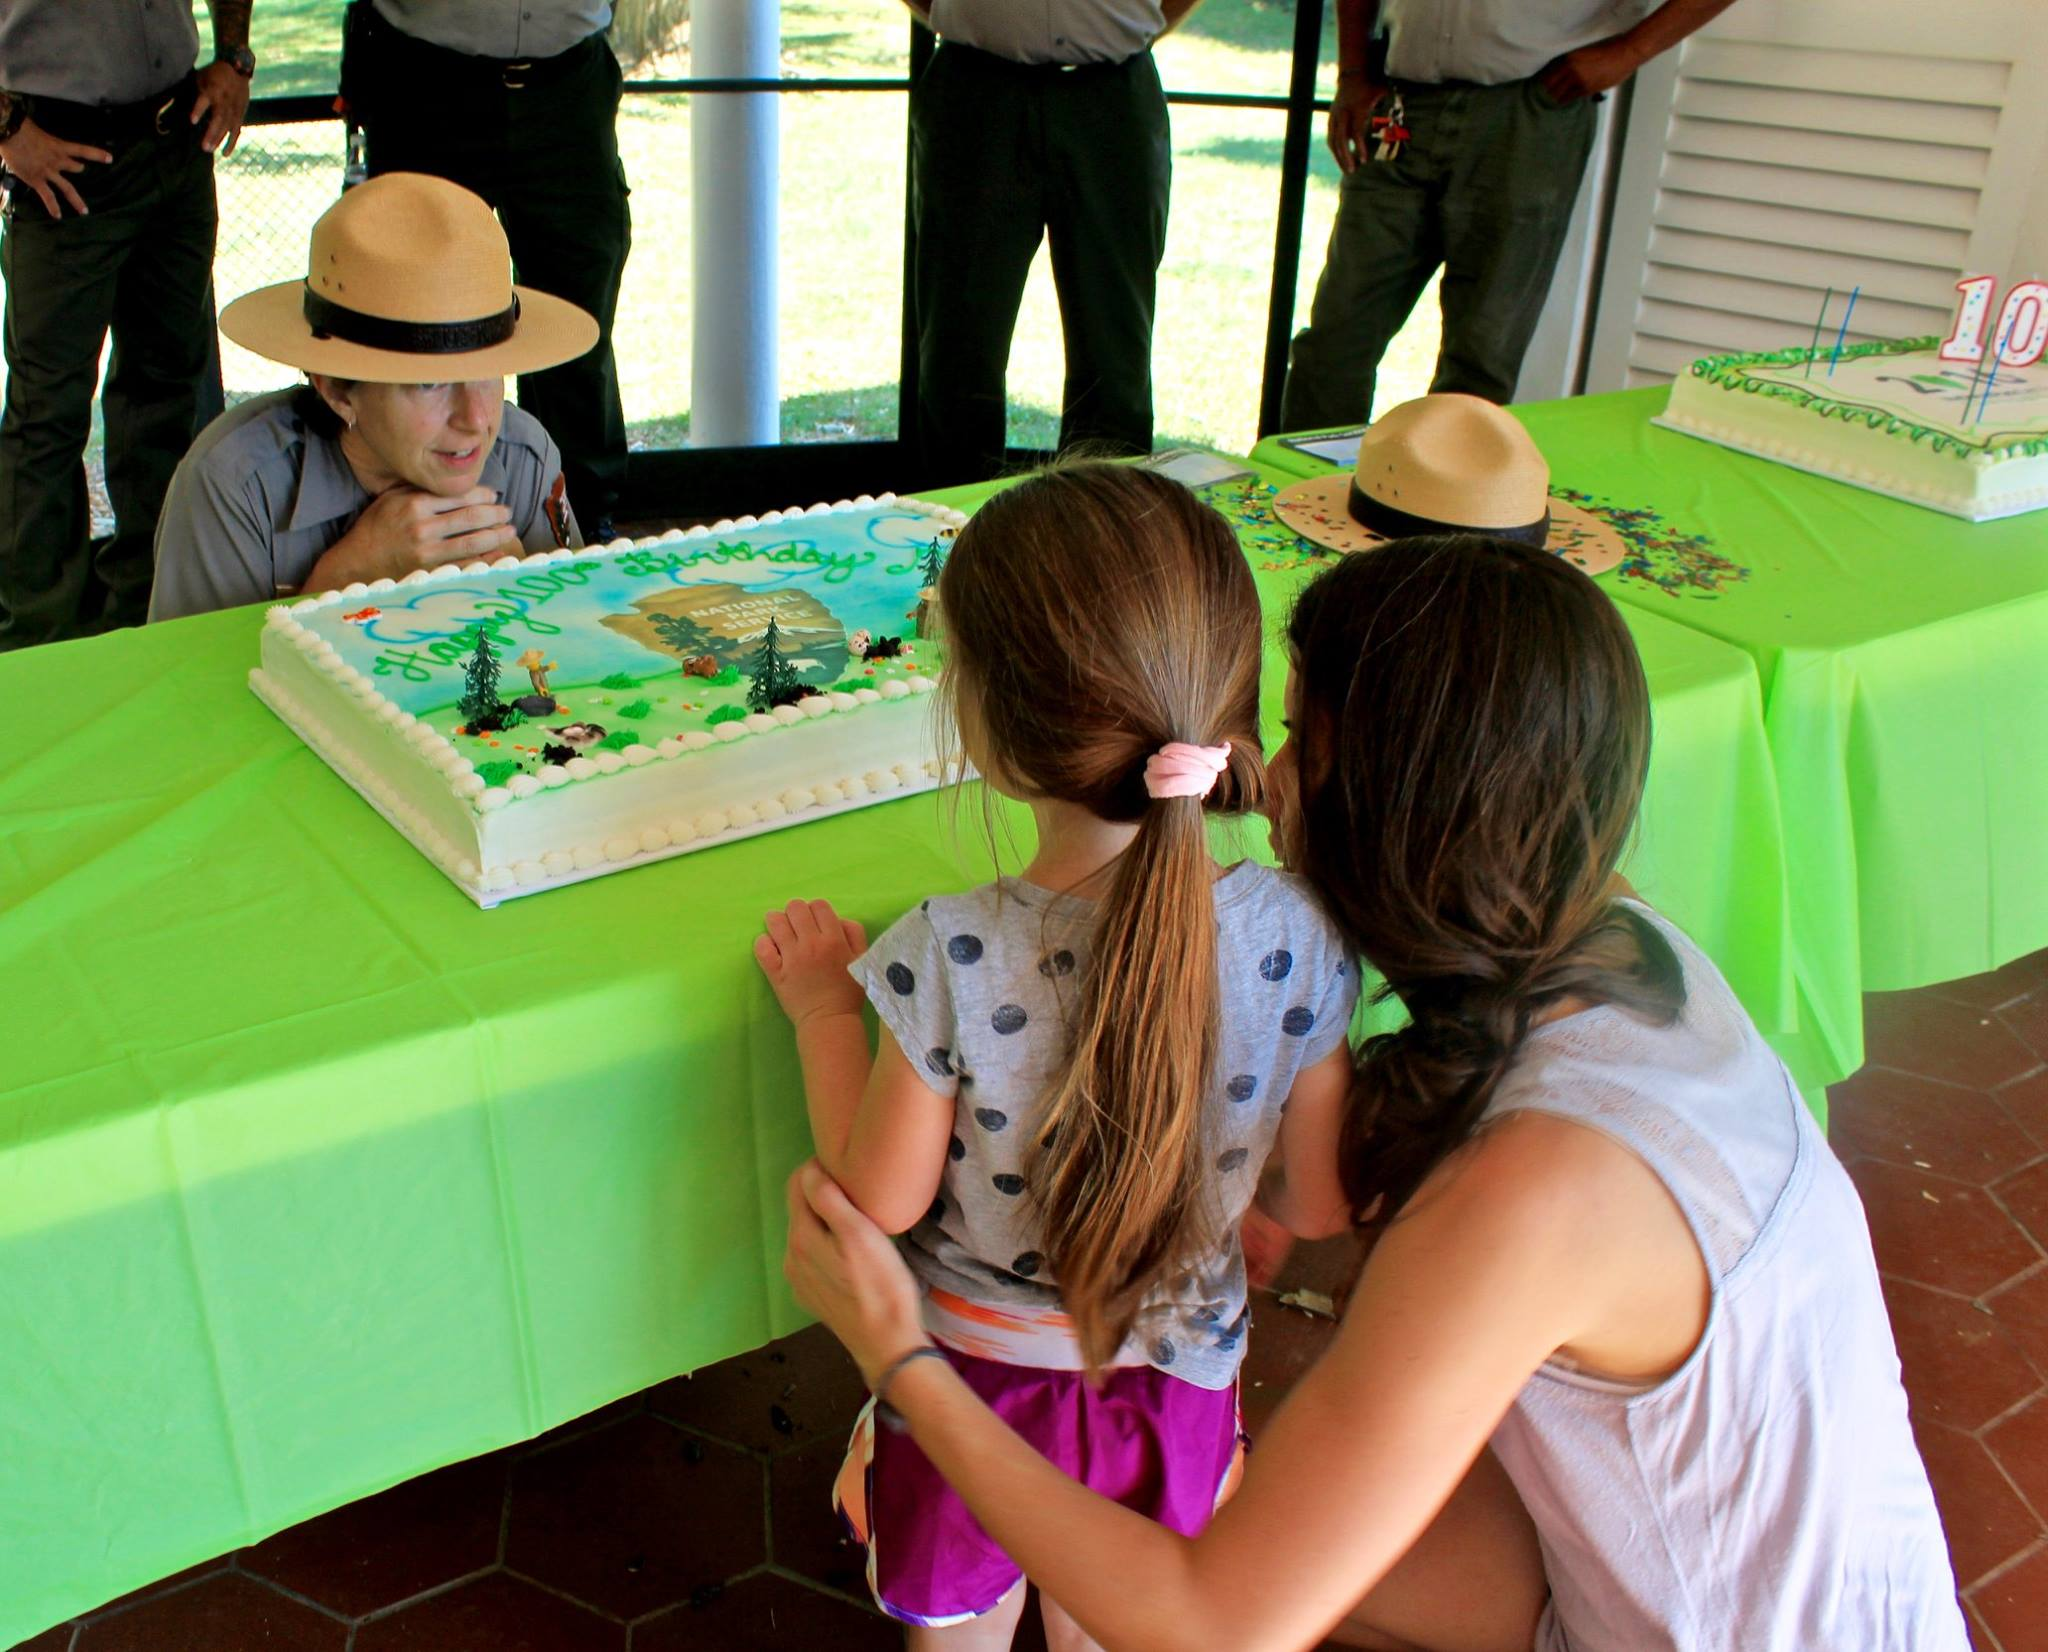 Park ranger with flat hat kneels behind table with cake to talk to small child and her mother